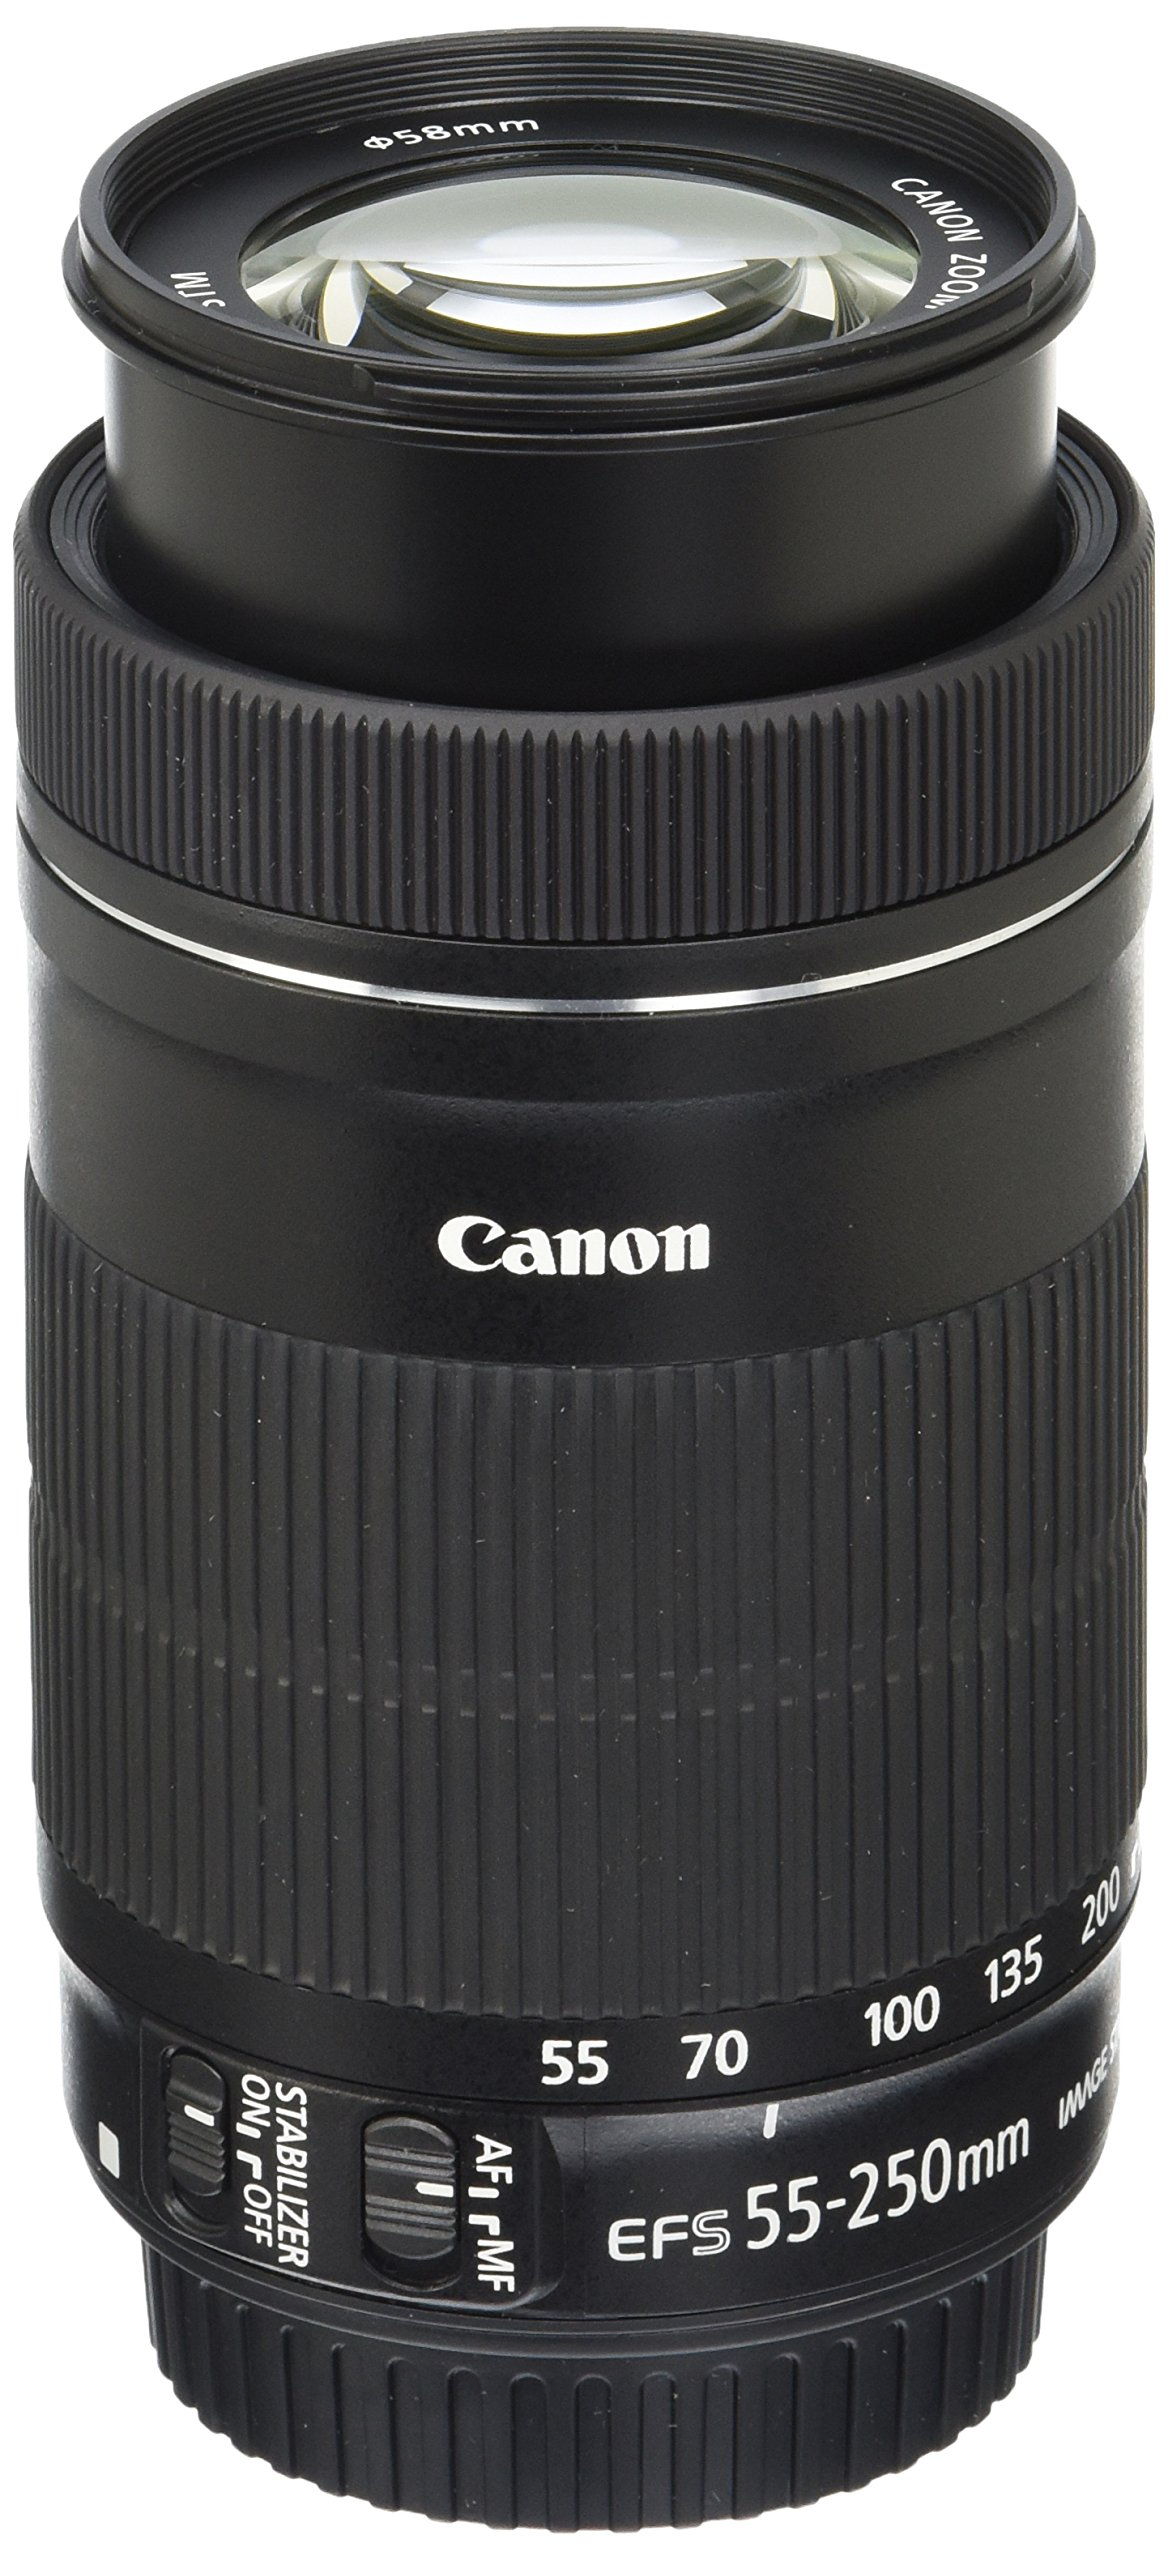 Canon EF-S 55-250mm F4-5.6 IS STM Lens for Canon SLR Cameras by Canon